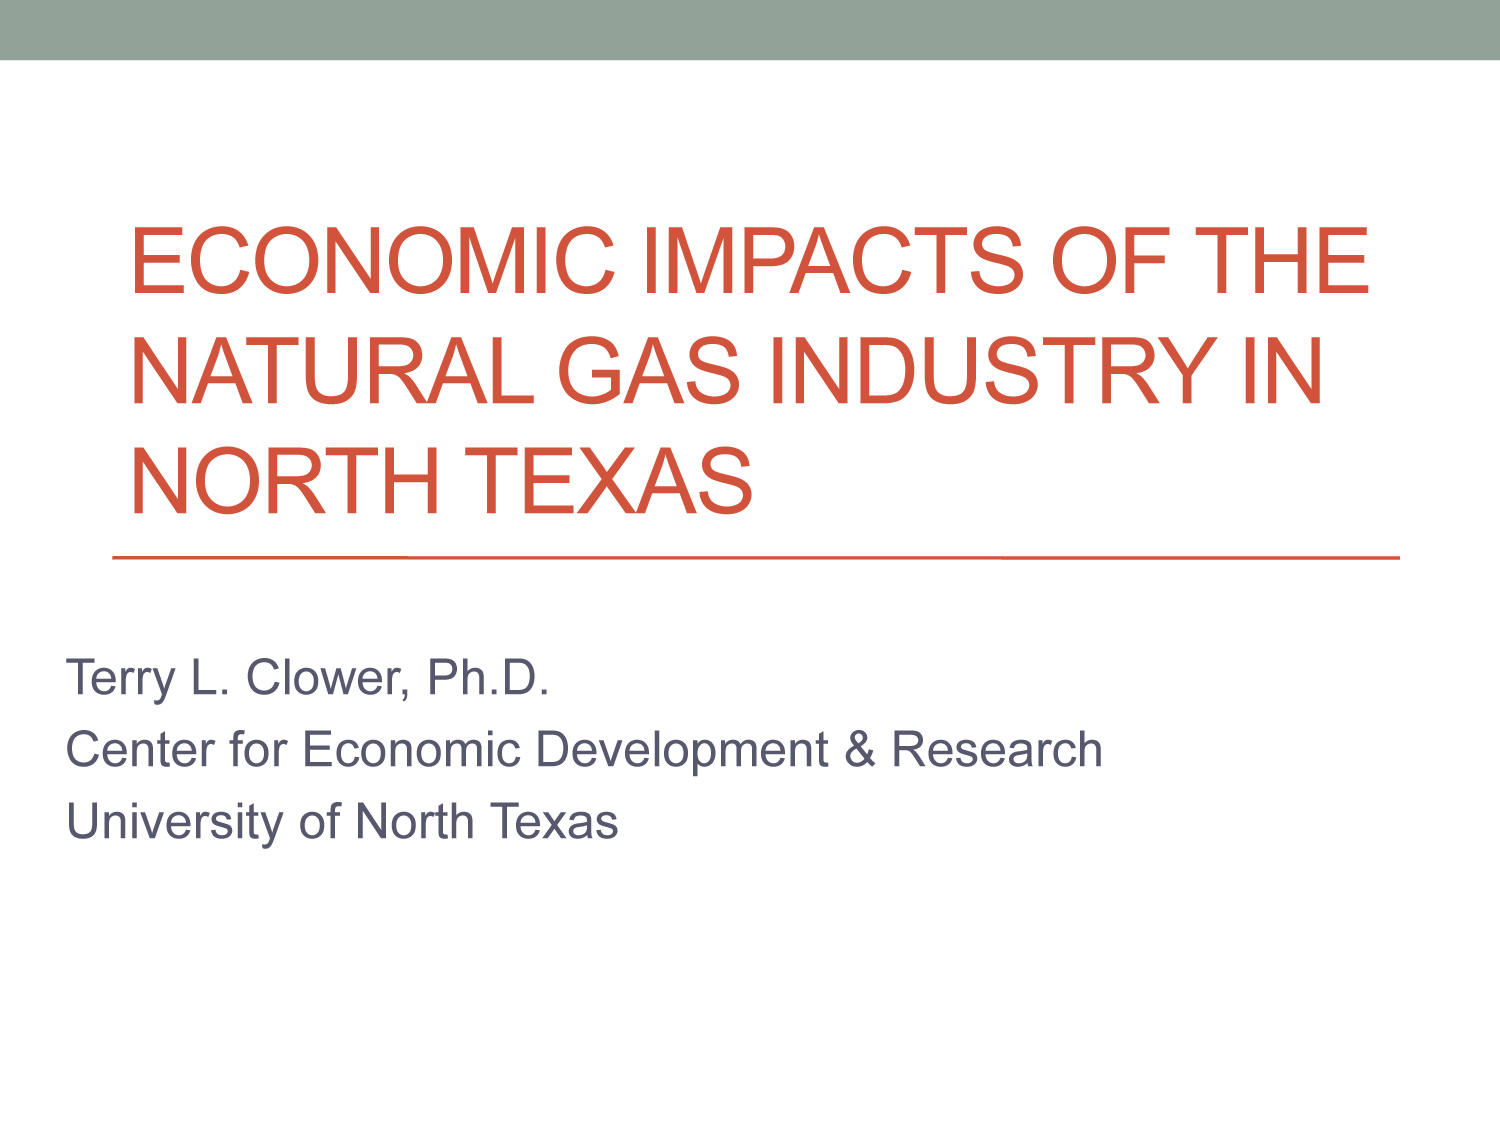 Economic Impacts of the Natural Gas Industry in North Texas                                                                                                      [Sequence #]: 1 of 11